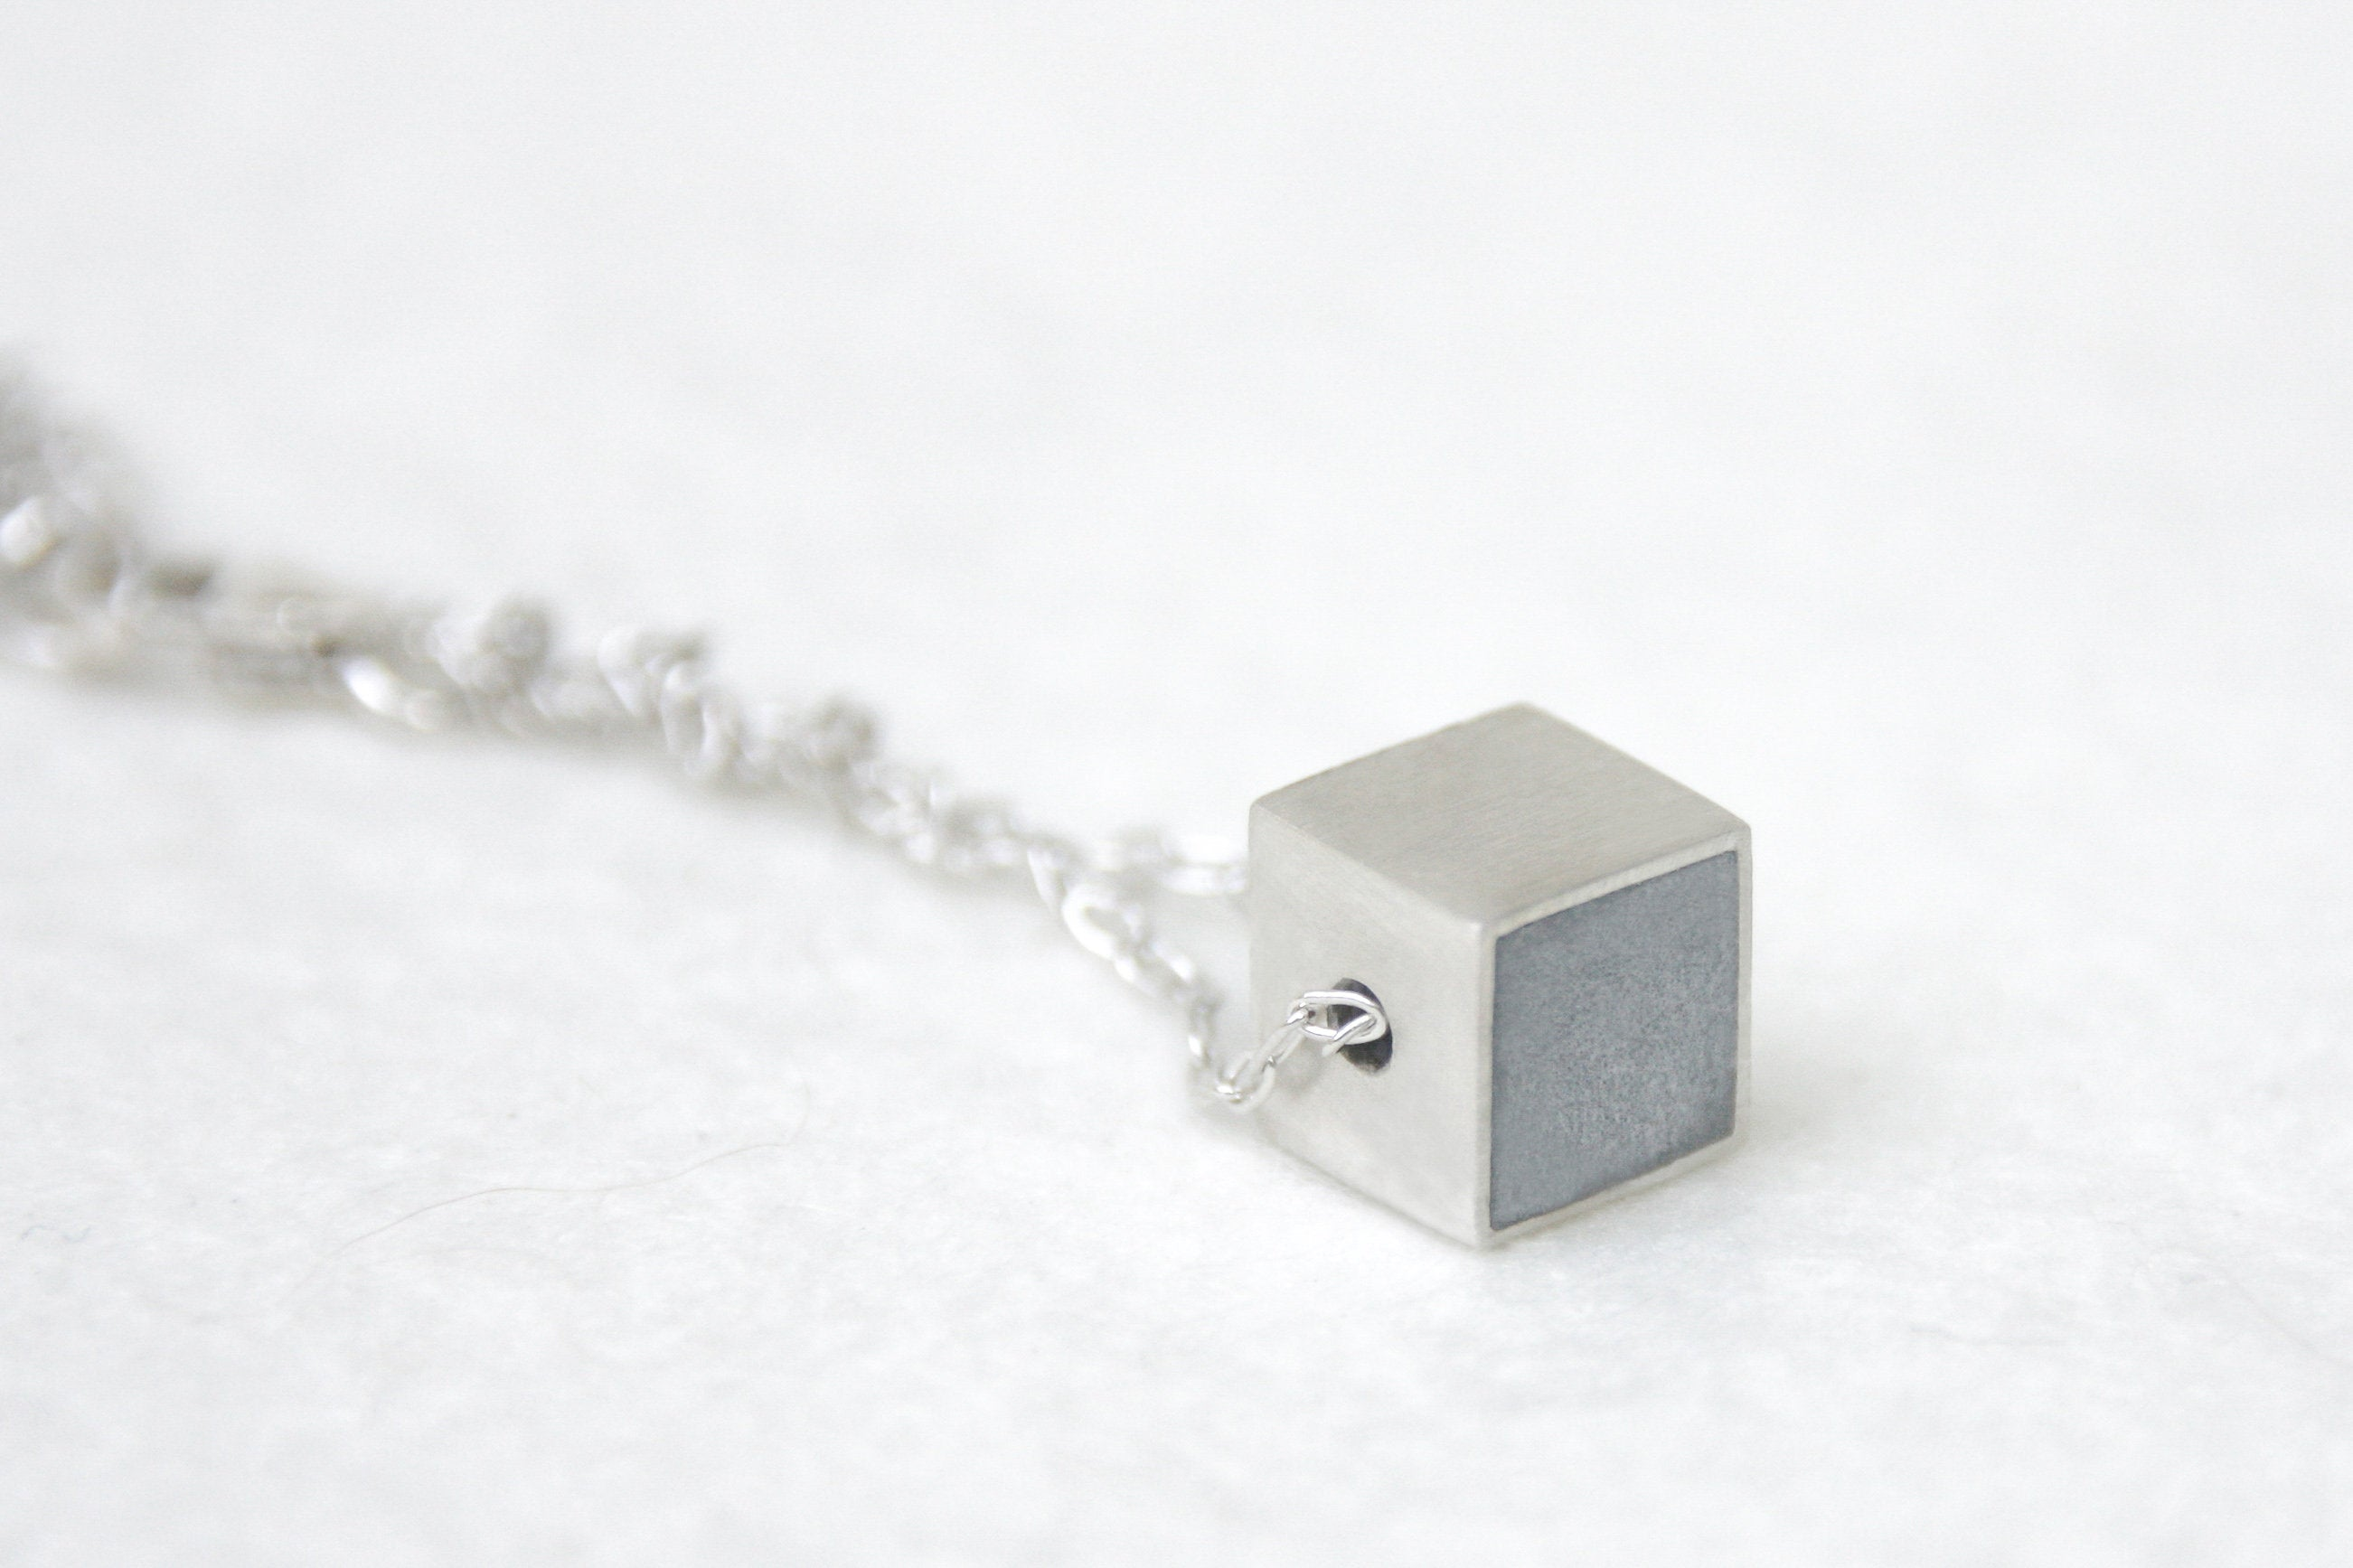 Tiny Cube Necklace with Oxidize Silver Chain - hs